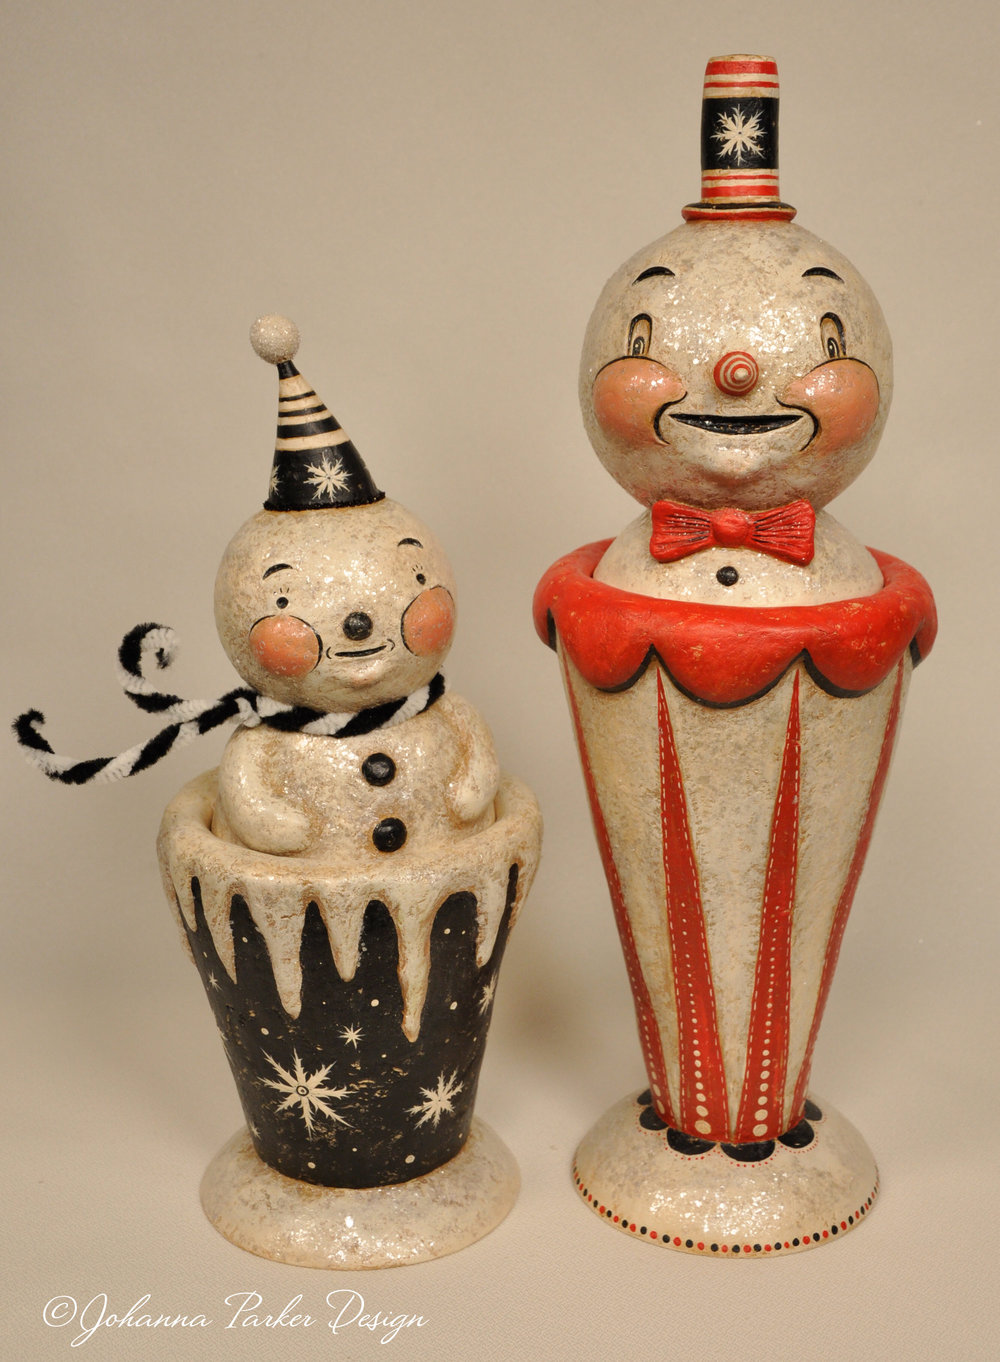 Snowman candy container duo